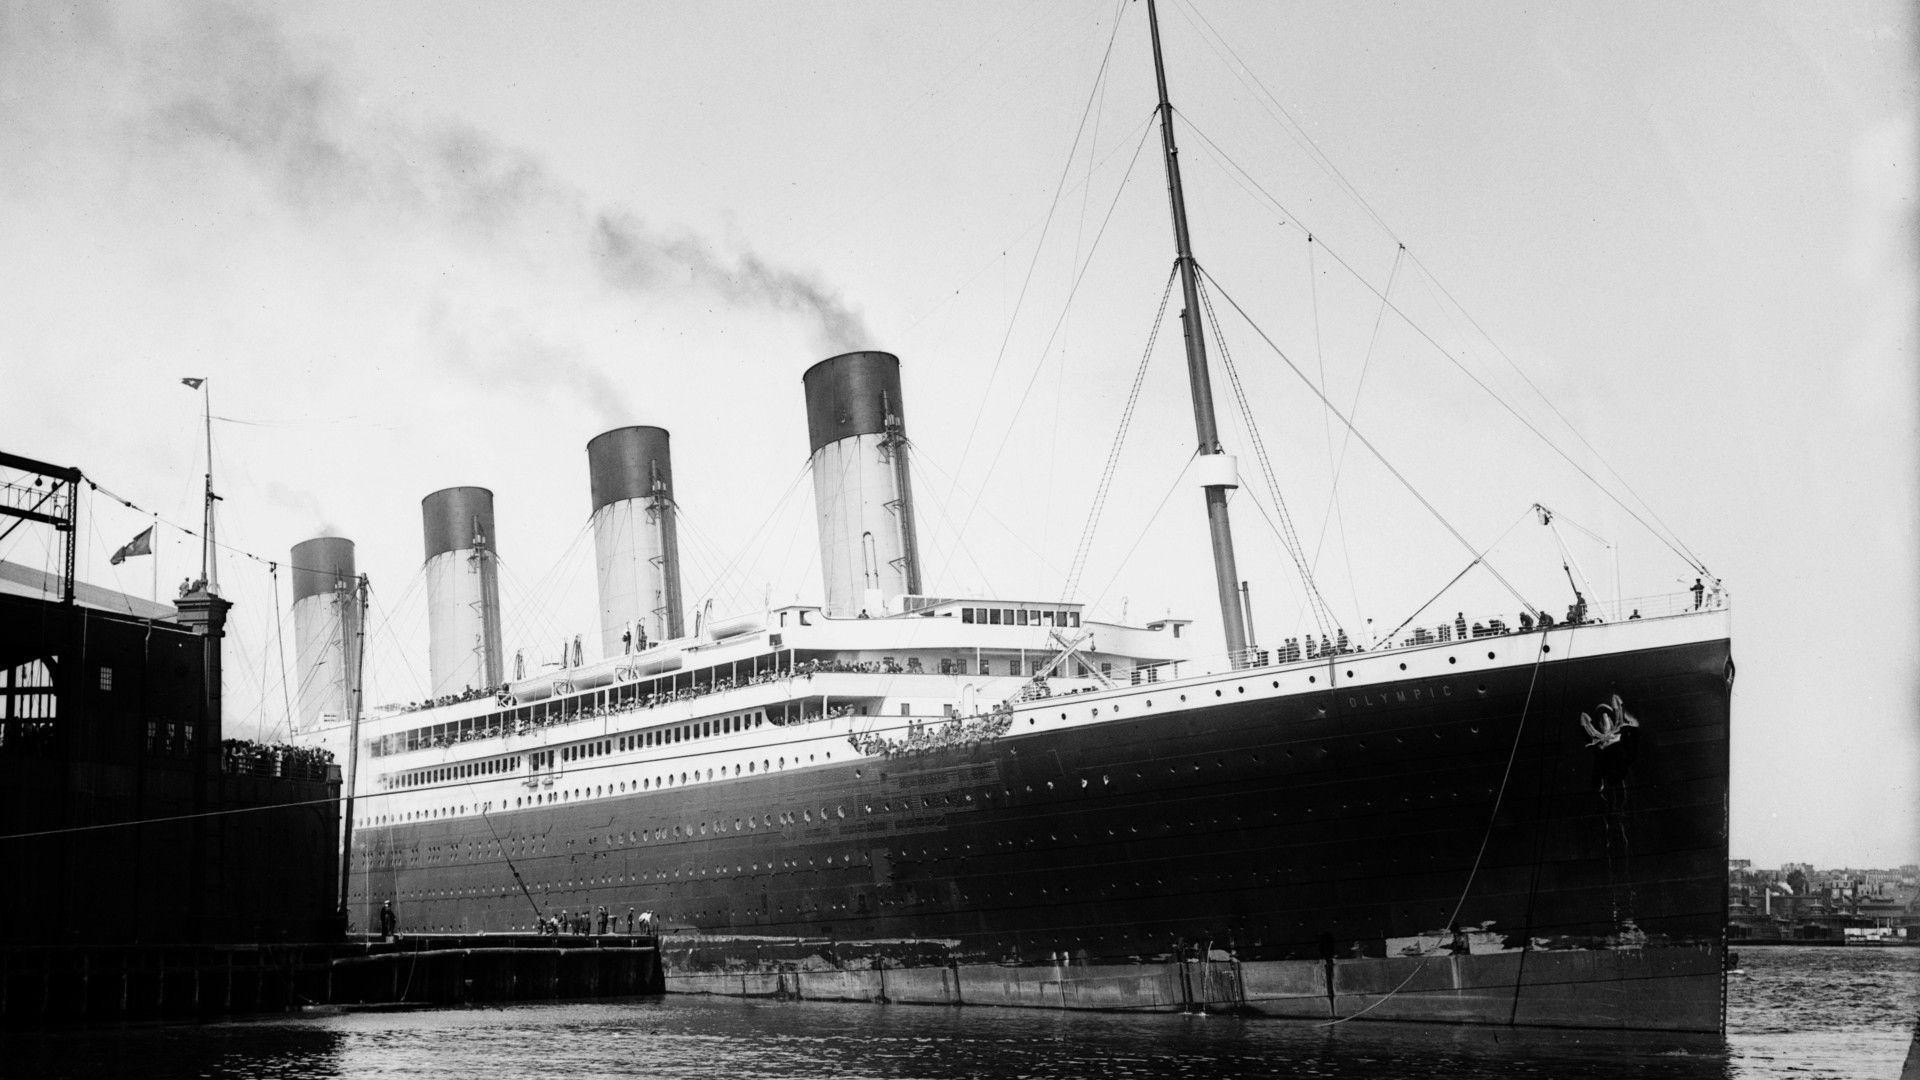 1920x1080 3 Rms Titanic Wallpapers | Rms Titanic Backgrounds